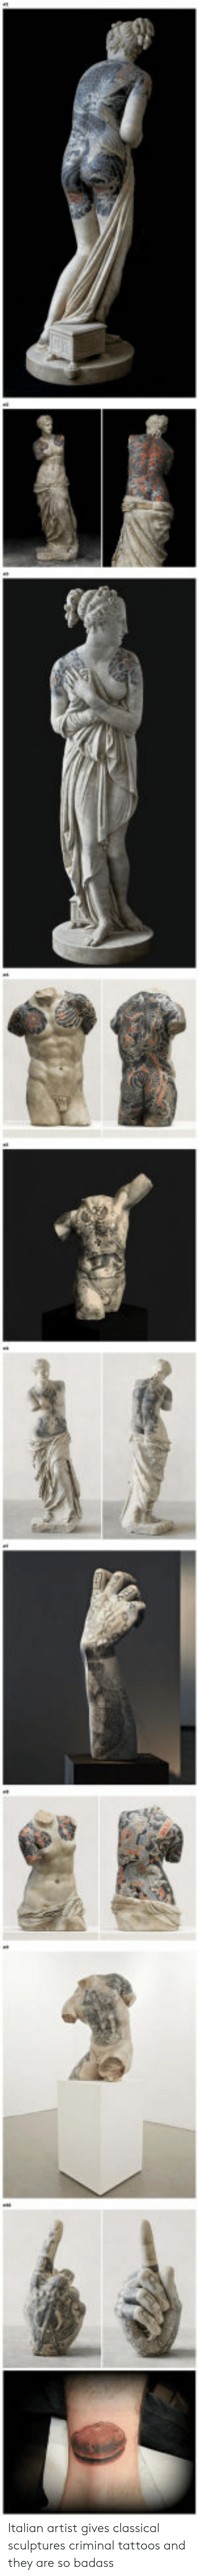 Tattoos, Badass, and Classical: Italian artist gives classical sculptures criminal tattoos and they are so badass